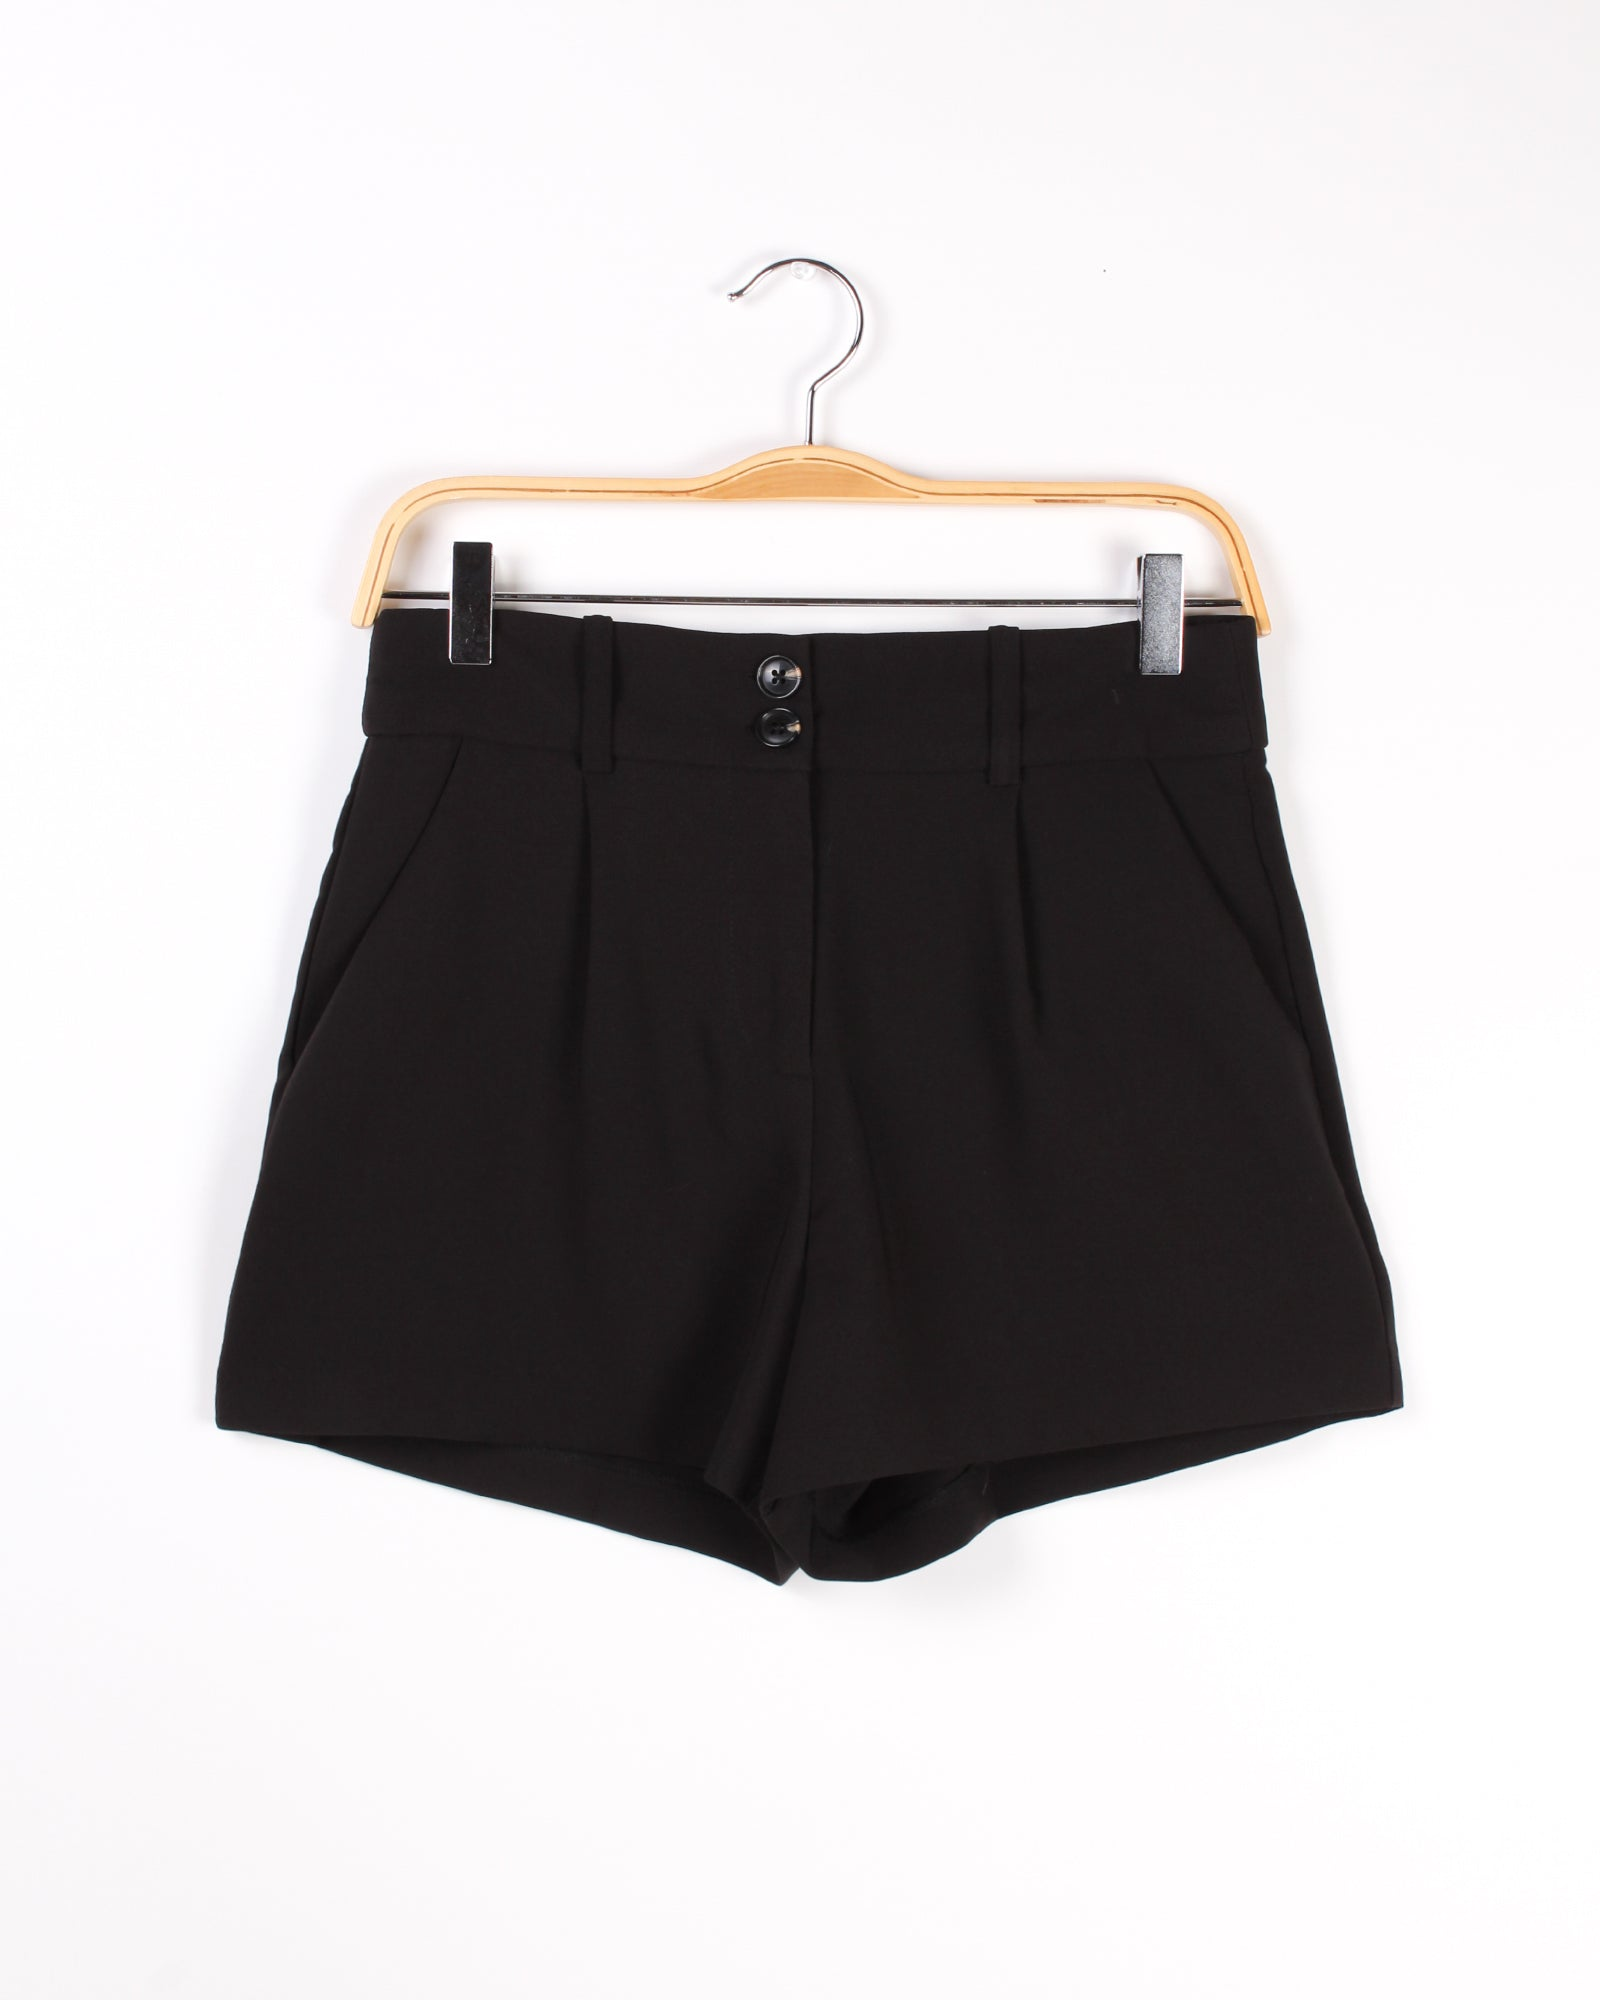 Pave Your Own Way Shorts (Black)